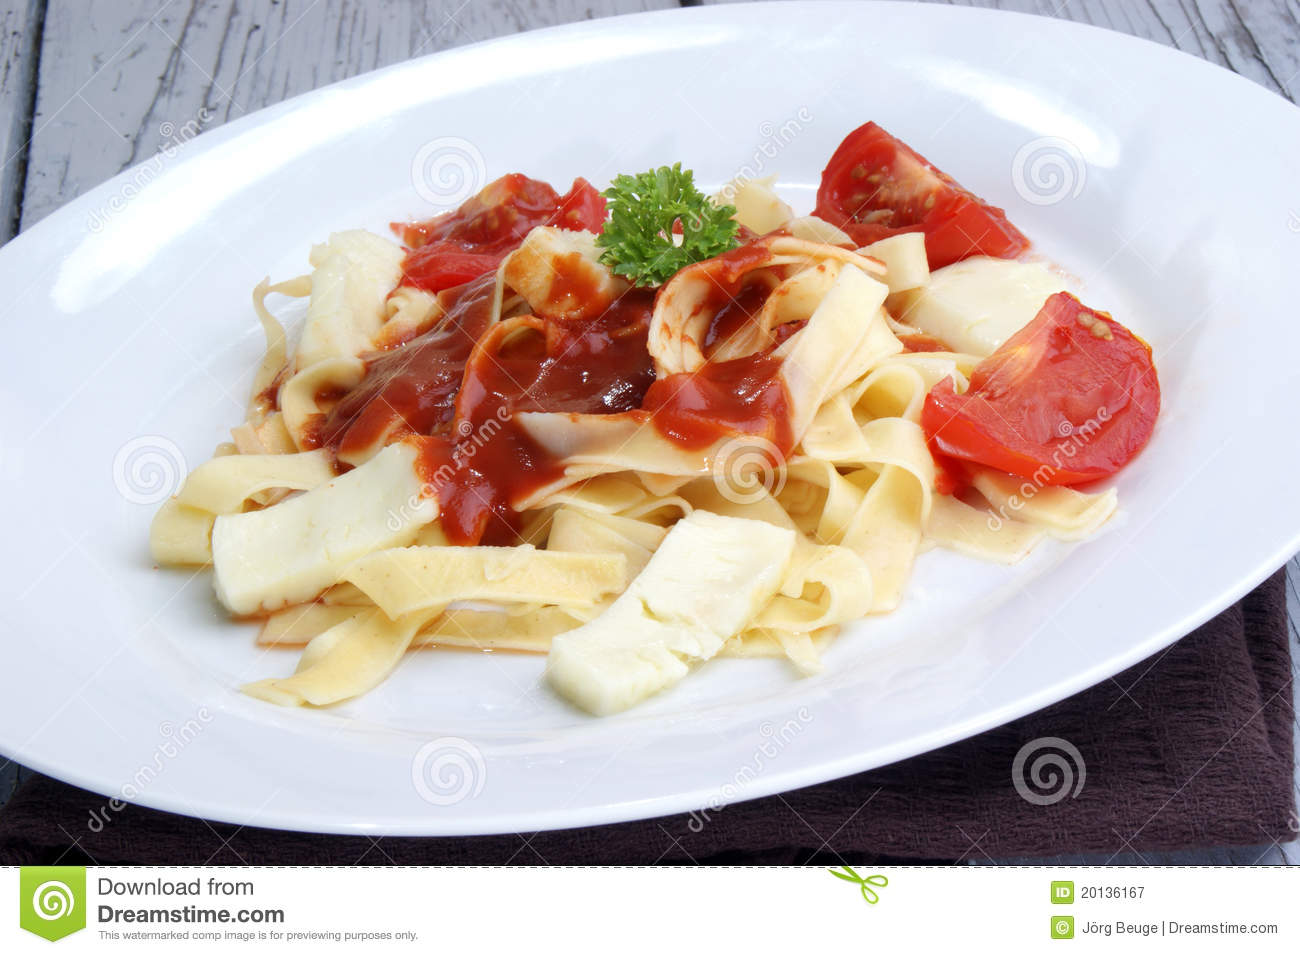 ... Free Stock Photography: Pasta with tomato sauce and baked goat cheese